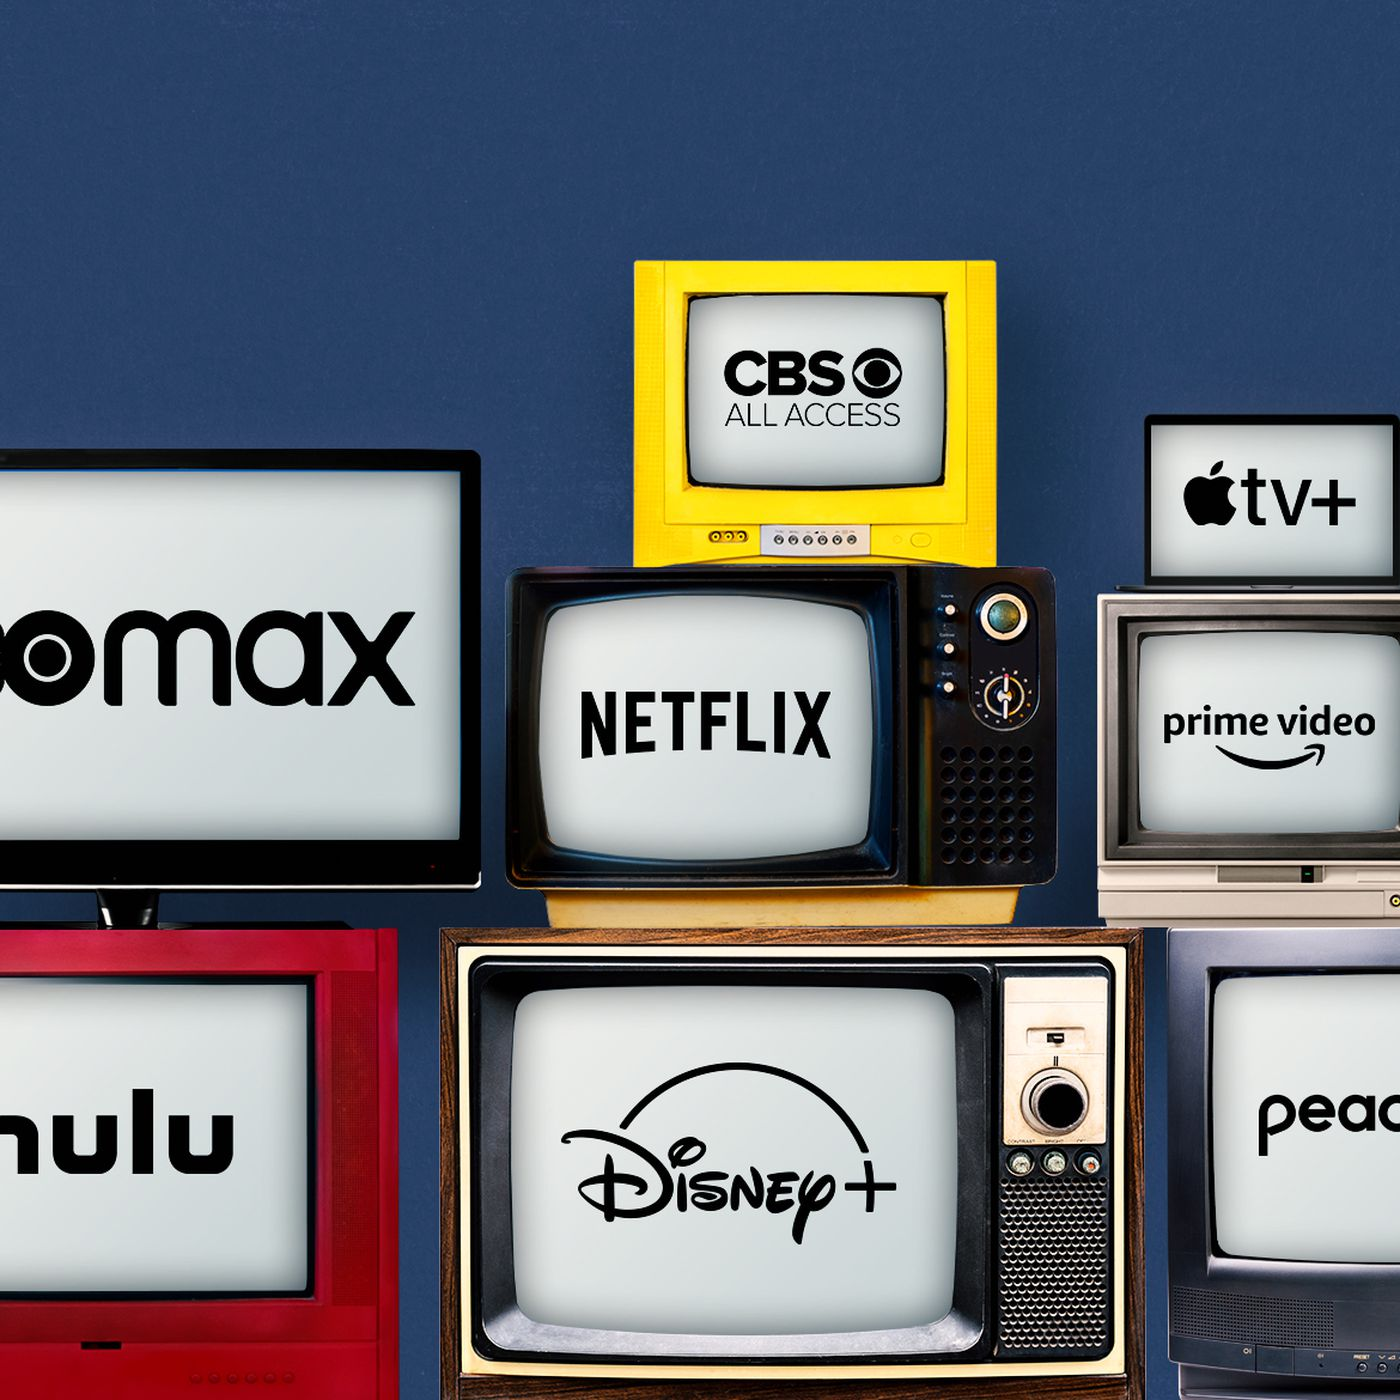 Best Streaming Services 2021 Peacock? HBO Max? Netflix? Disney Plus? Hulu? A guide to the